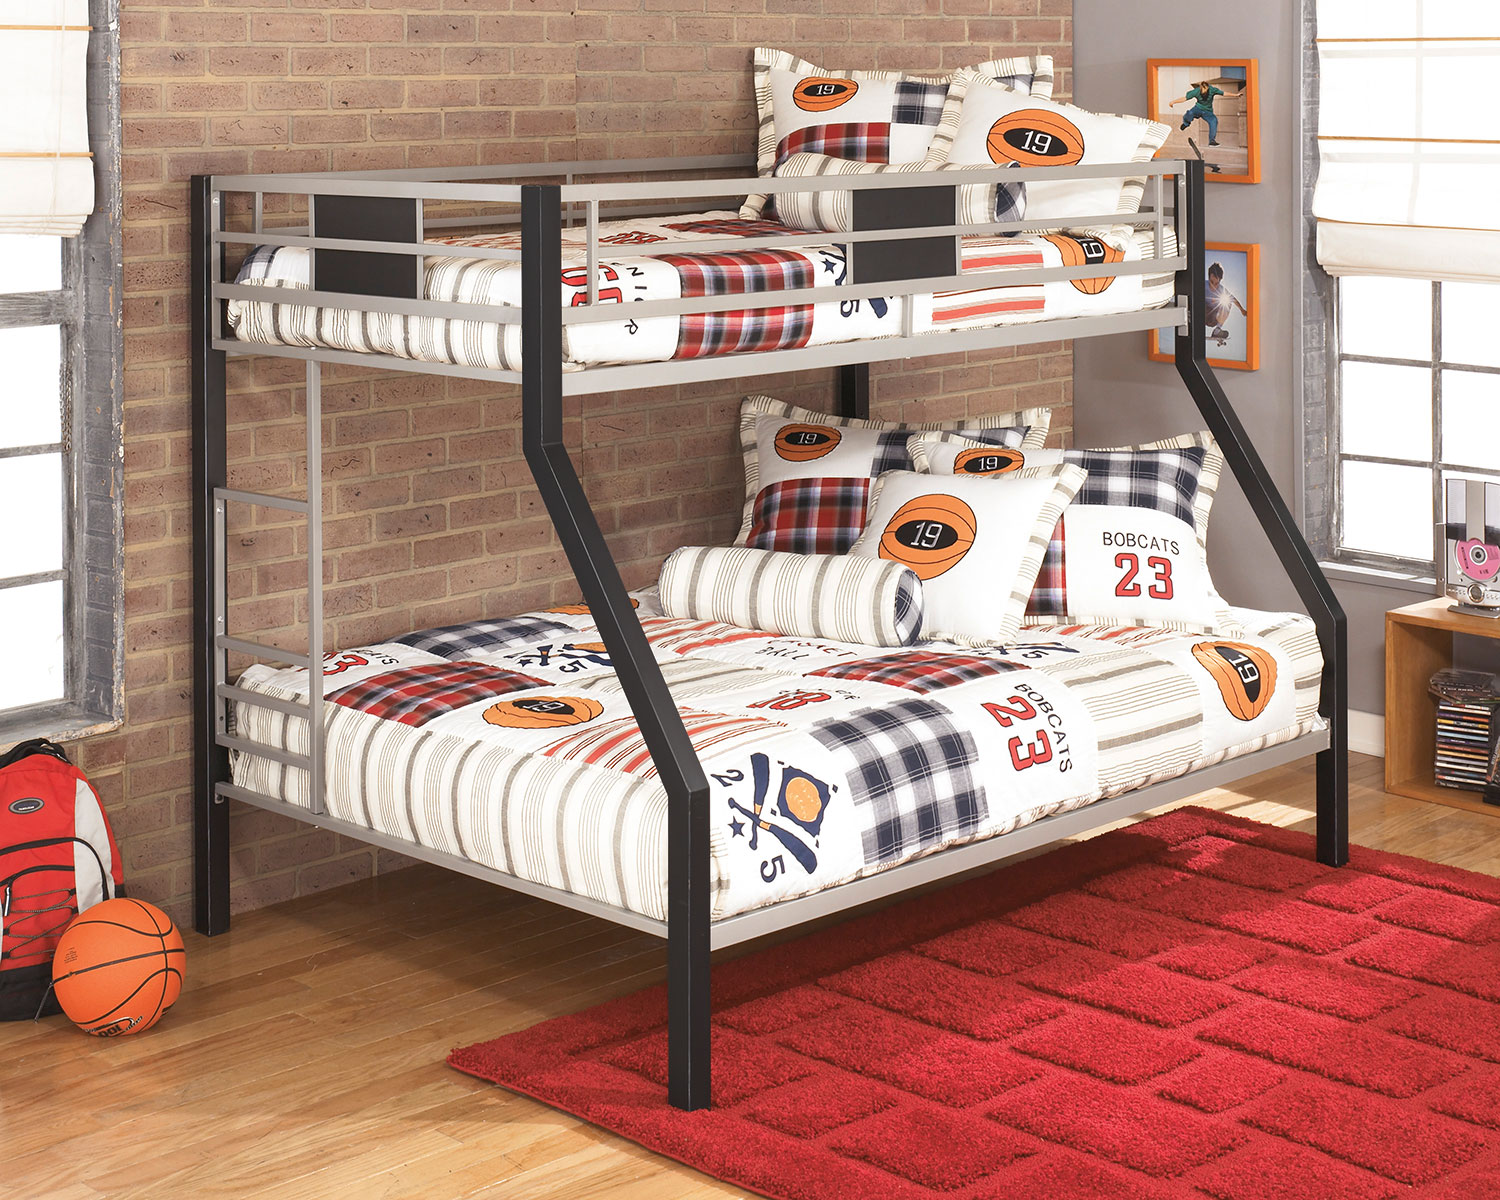 Dinsmore Twin Full Bunk Bed The Brick